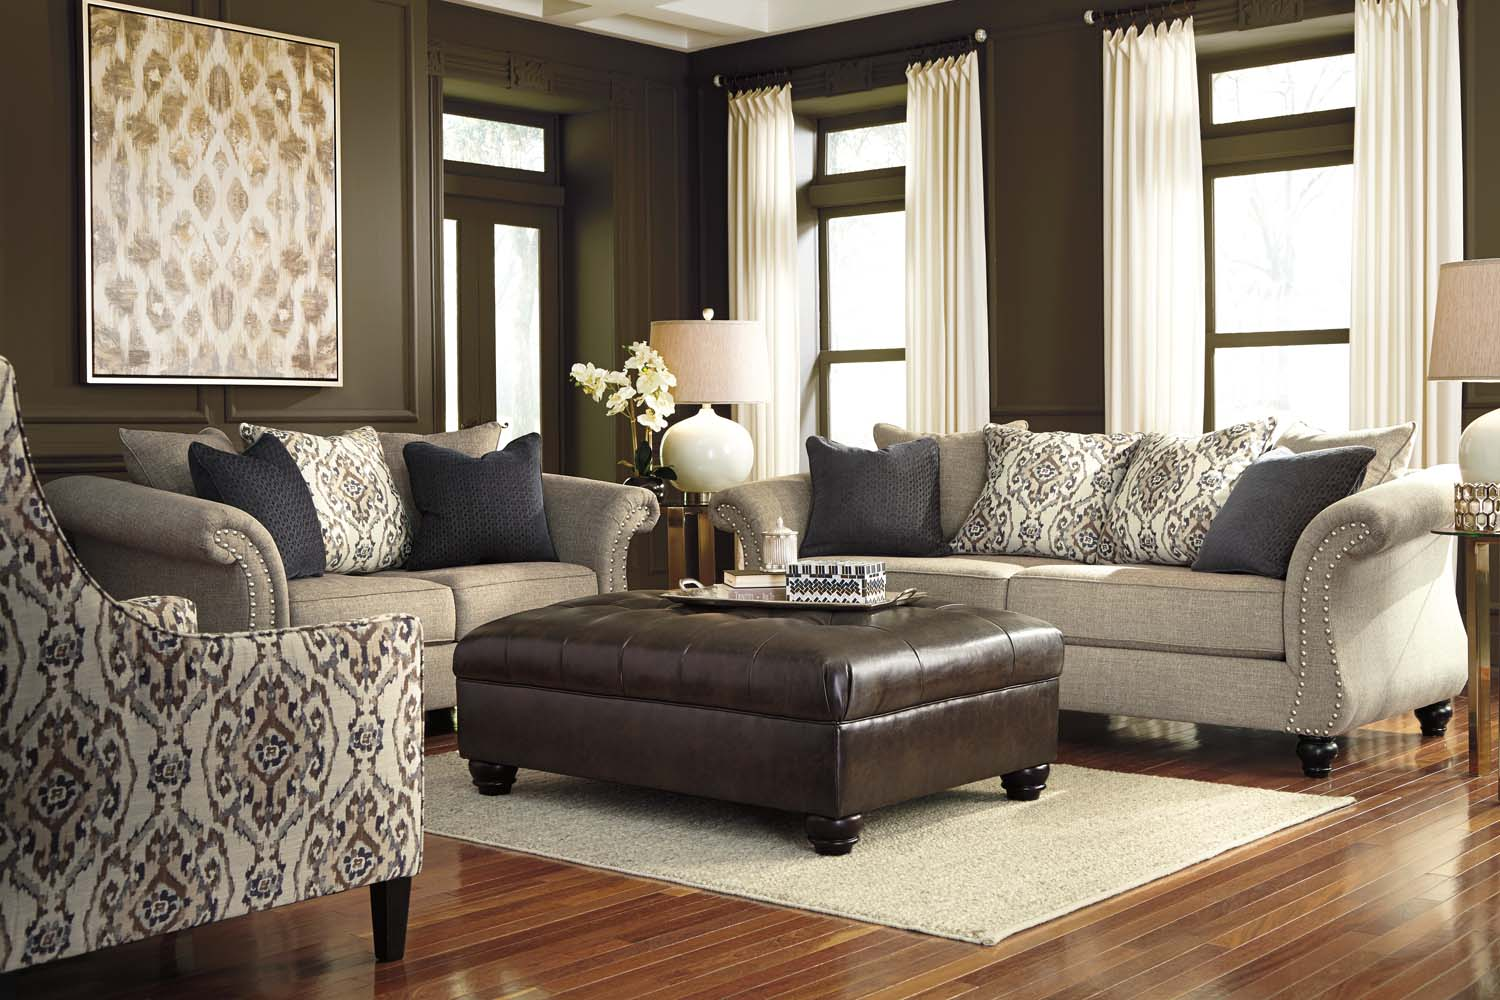 living room sets houston brown leather furniture decor 46101 in by ashley tx jonette stone set texas usa aztec